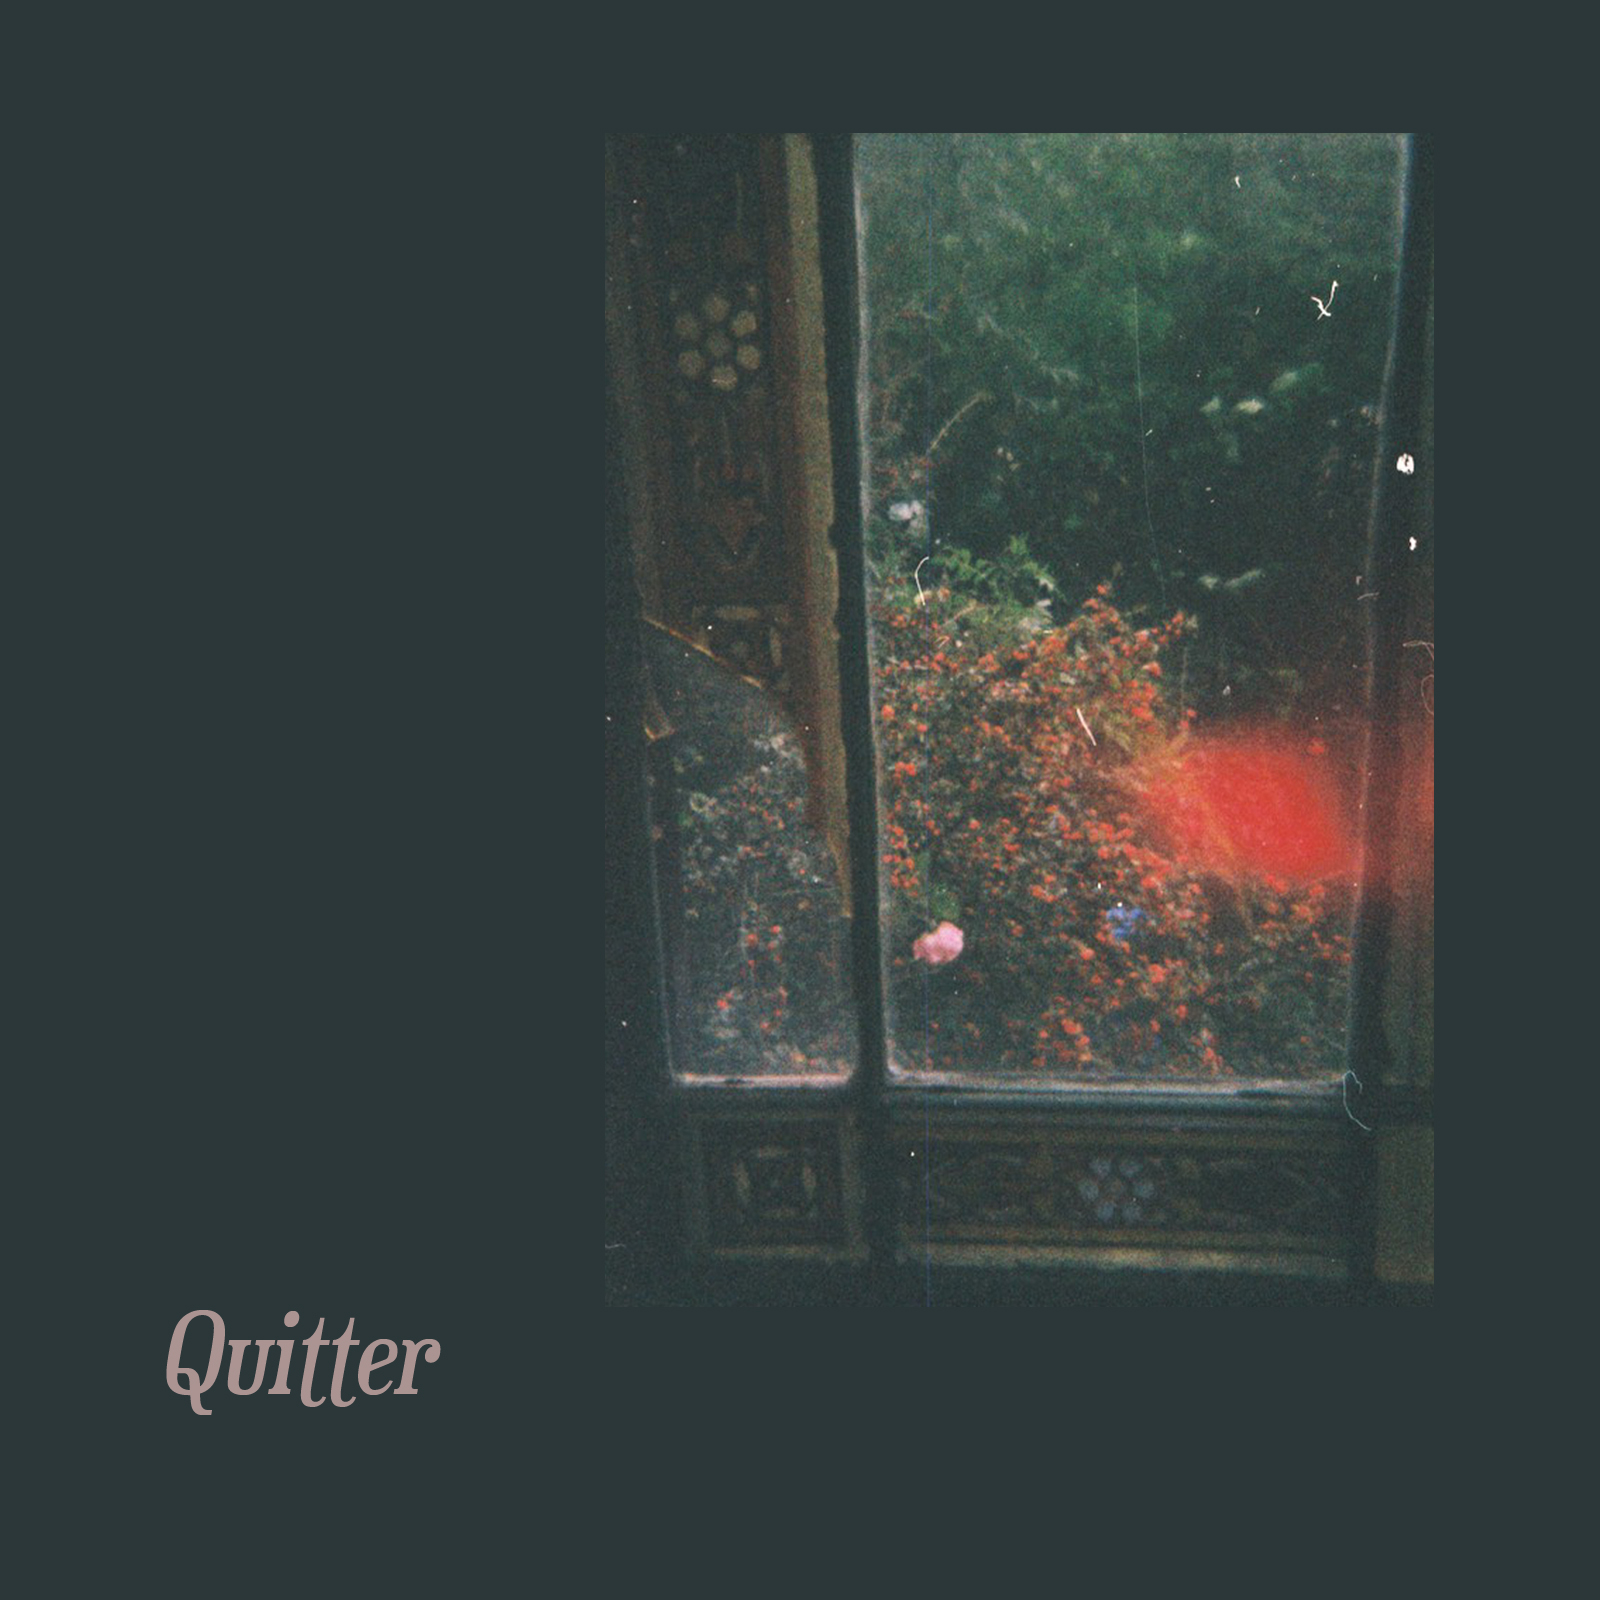 Quitter s:t album art